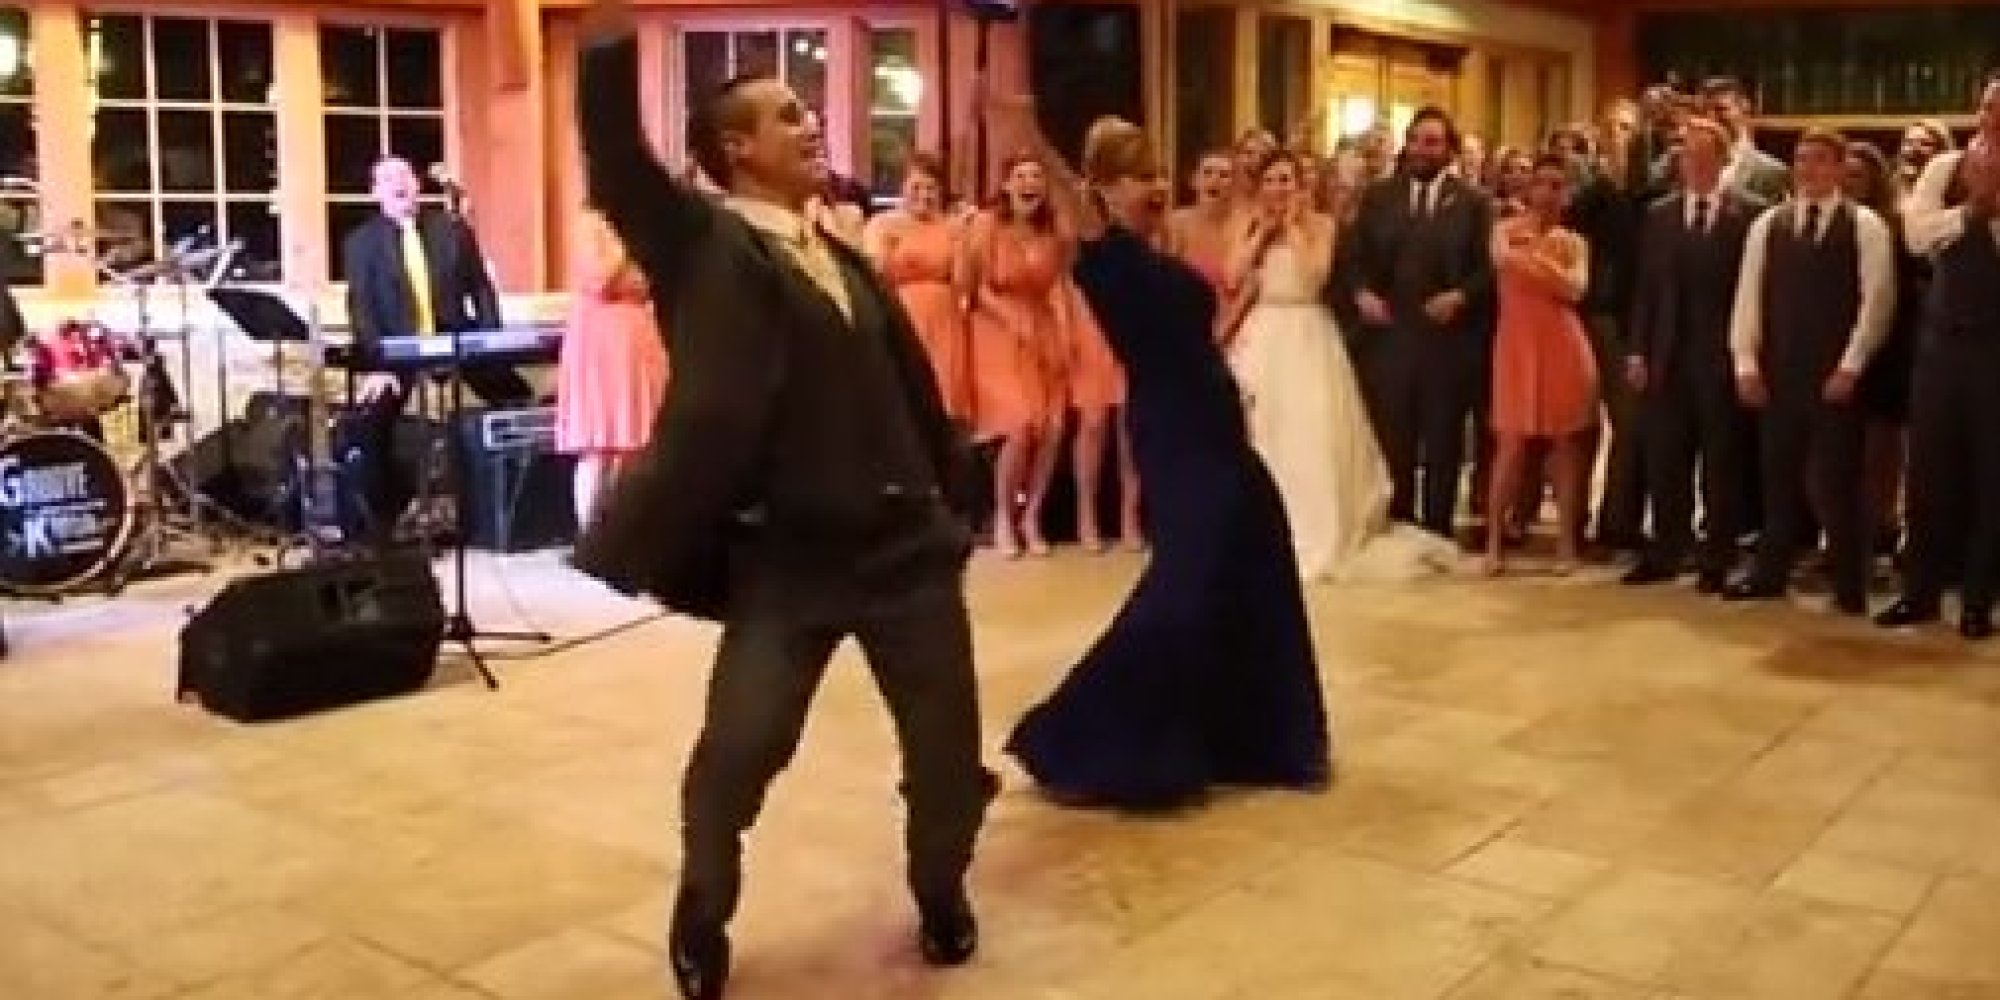 If Only All Mother Son Wedding Dances Were This Entertaining